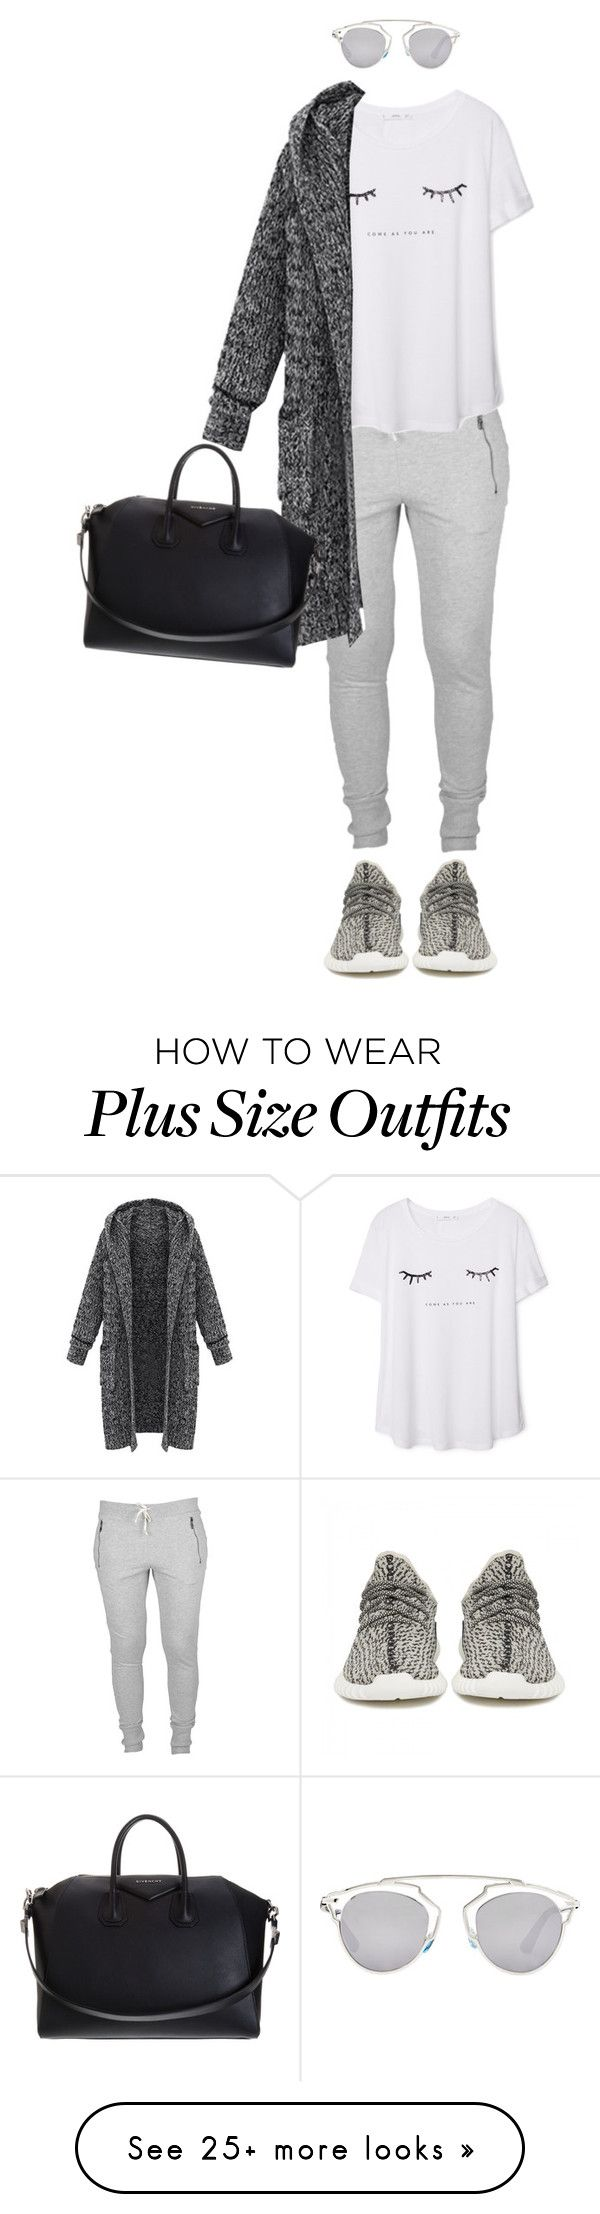 """sunday lazy"" by swagger97 on Polyvore featuring adidas Originals, MANGO, Givenchy and Christian Dior"